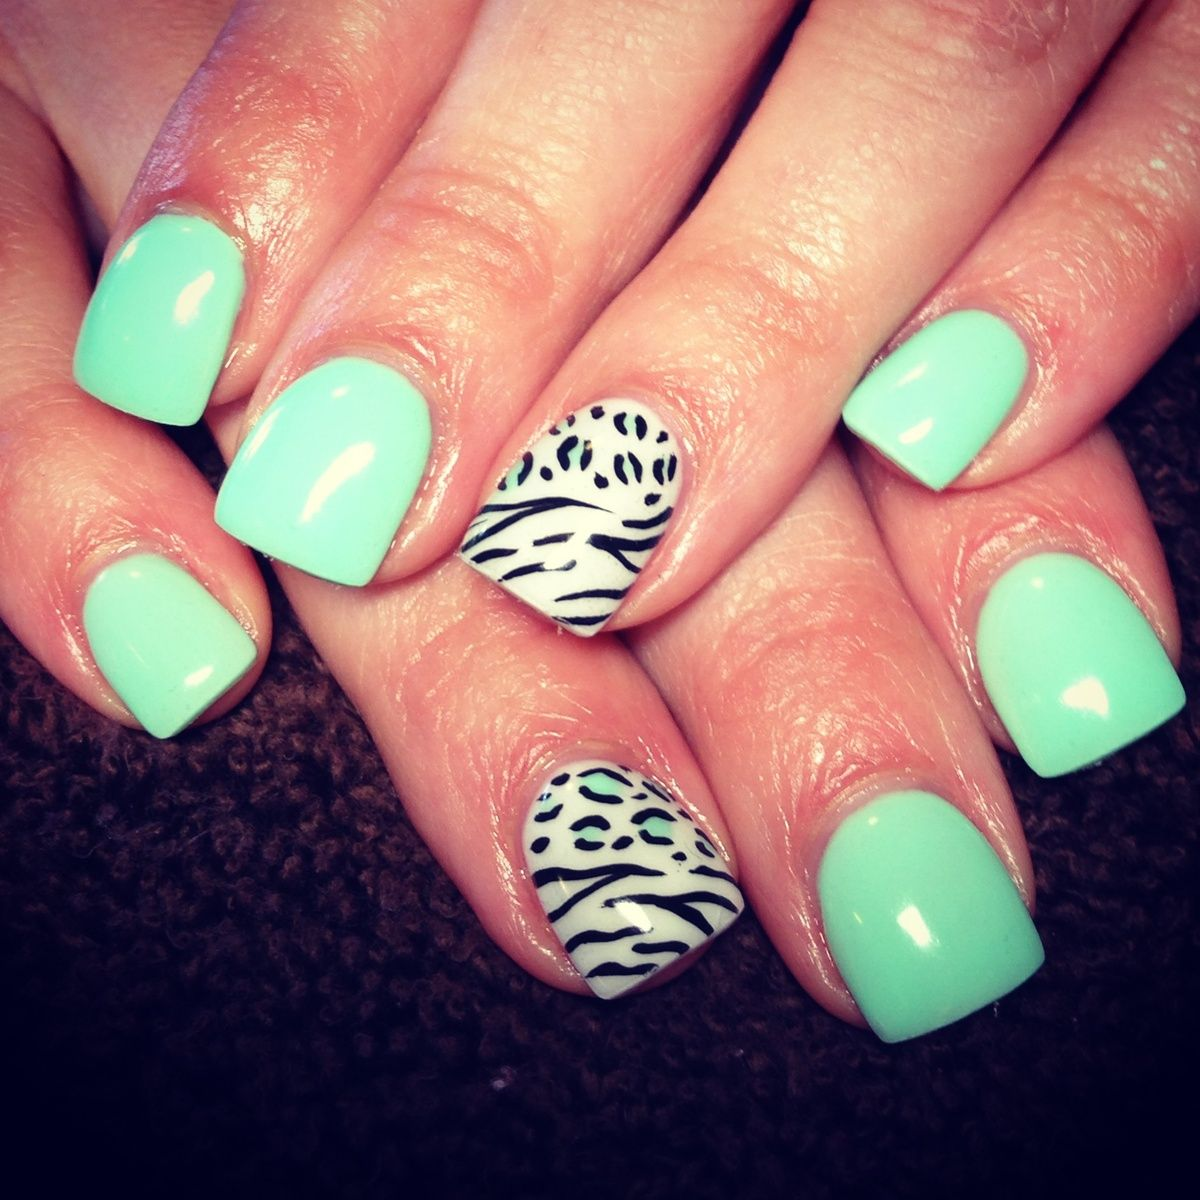 Mint polish with zebra accent naili just like the shape of mint gel nails zebra print leopard print done prinsesfo Choice Image